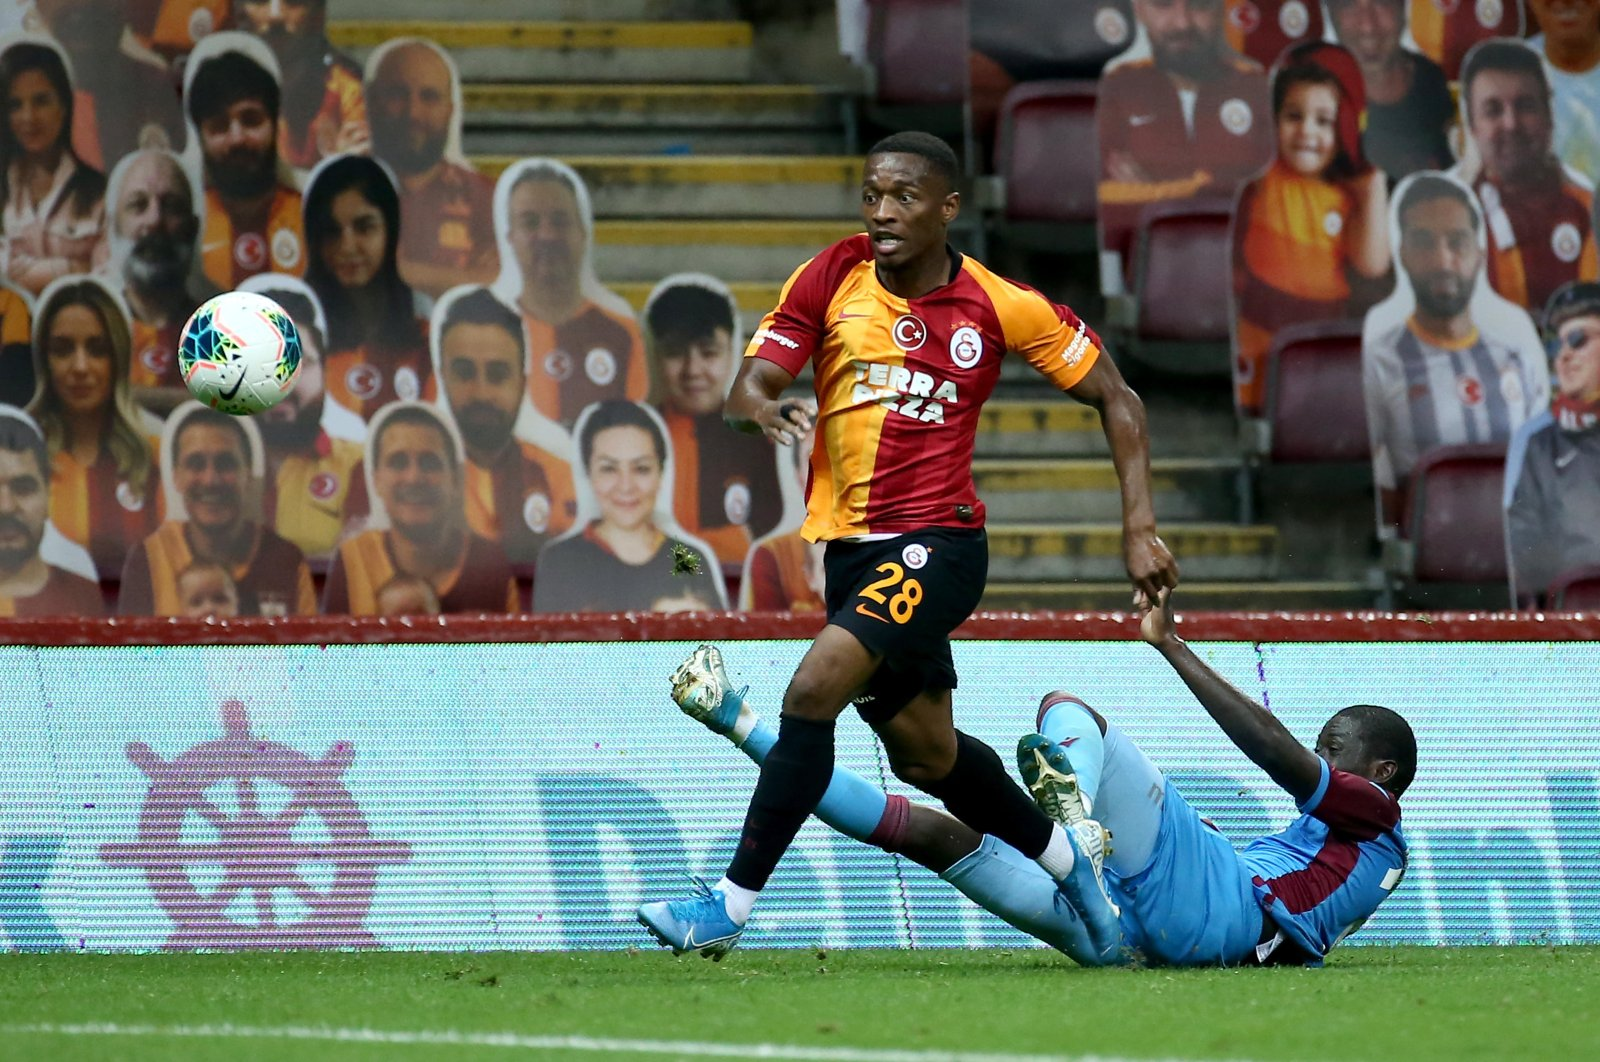 Fans' cut-outs appear in the background as Galatasaray's Jesse Sekidika (L) goes past Trabzonspor's Badou Ndiaye during a Turkish Süper Lig at the Türk Telekom Stadium, Istanbul, July 7, 2020 (AA Photo)